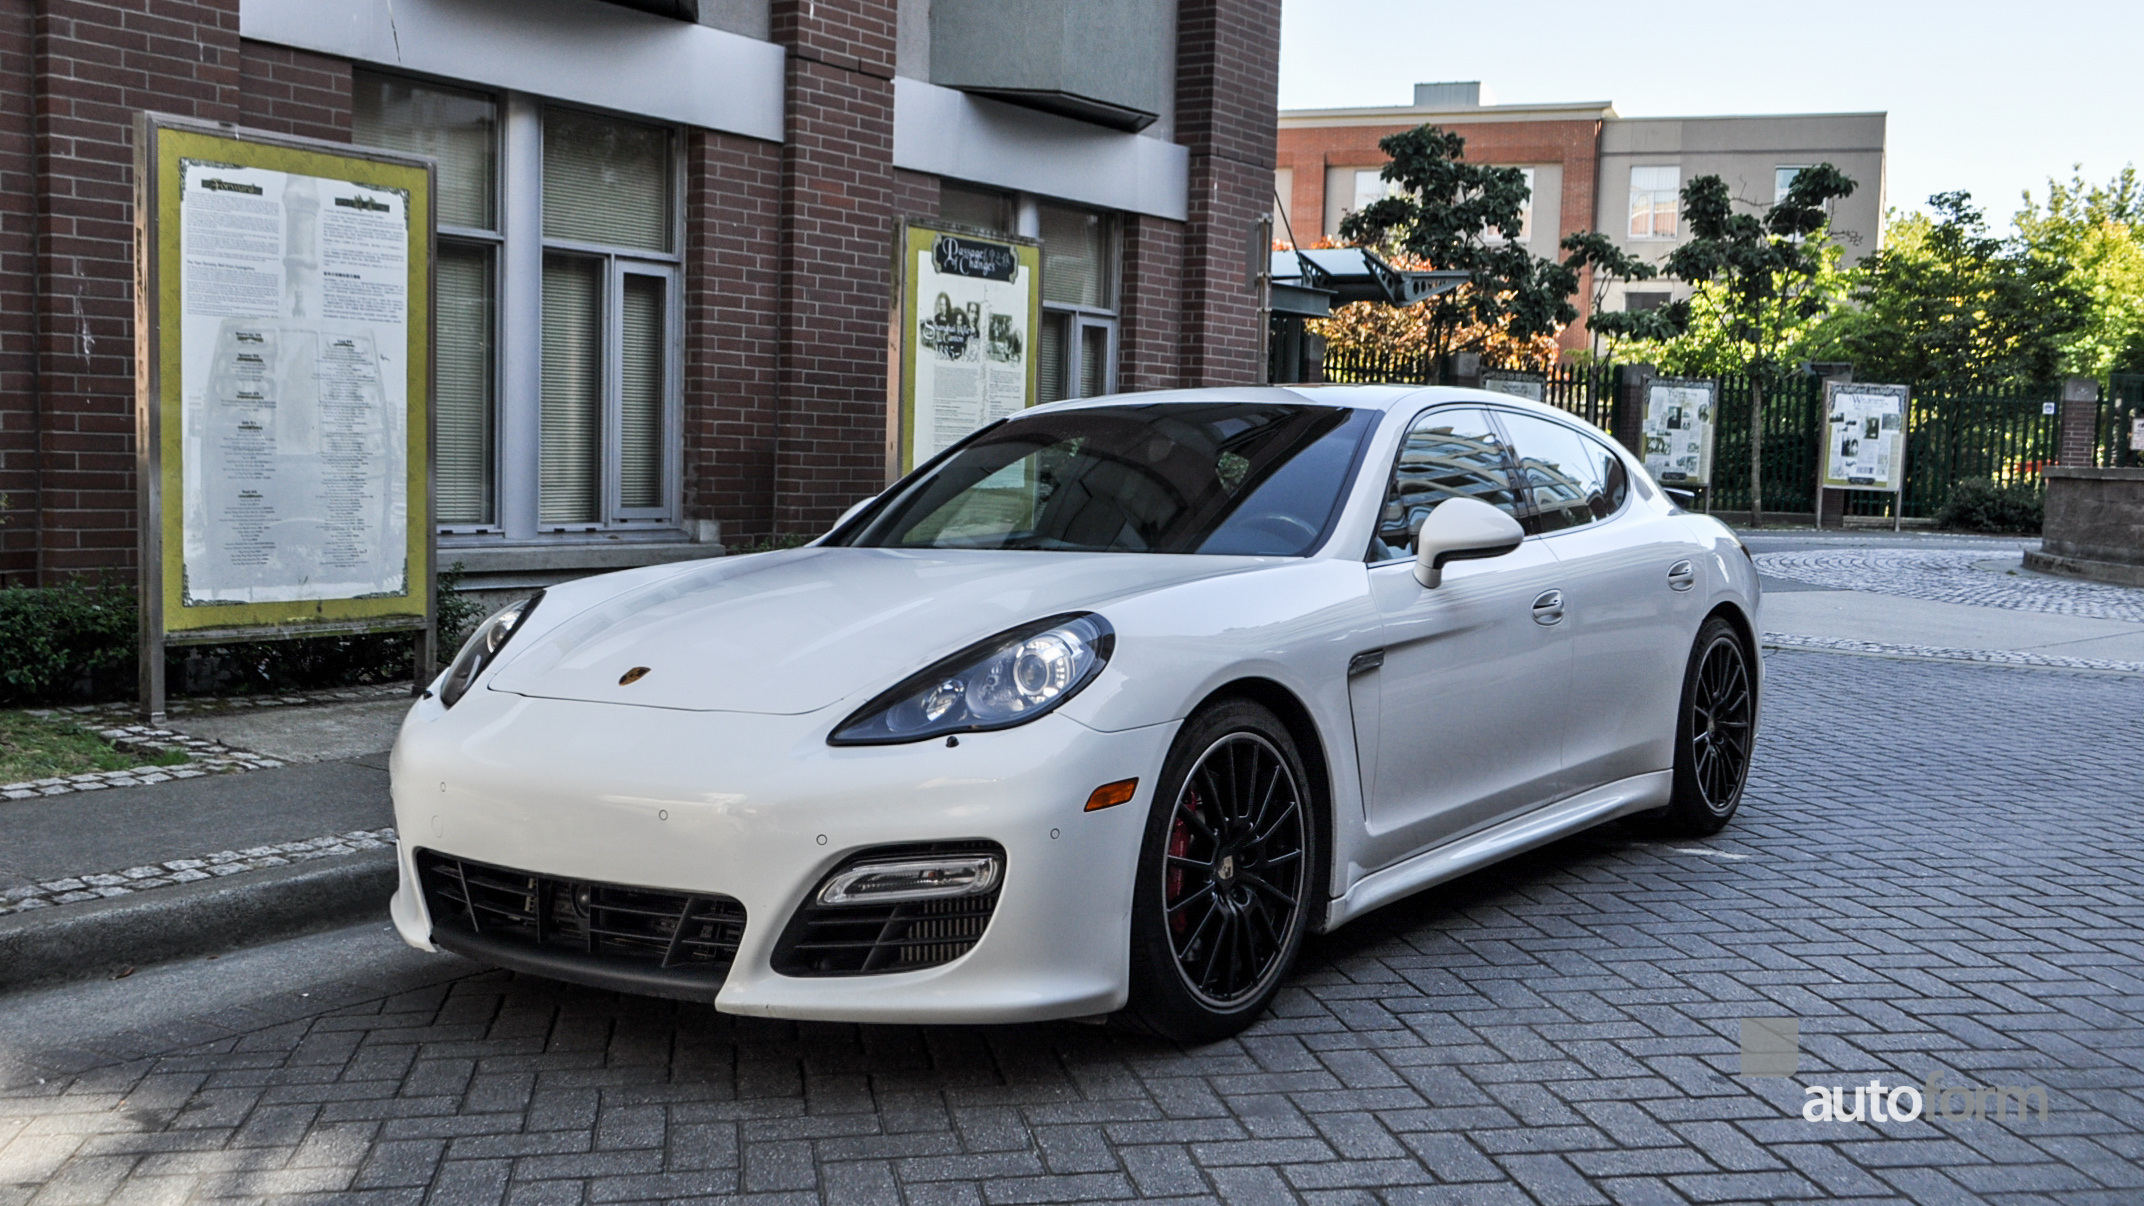 2013 porsche panamera turbo autoform. Black Bedroom Furniture Sets. Home Design Ideas